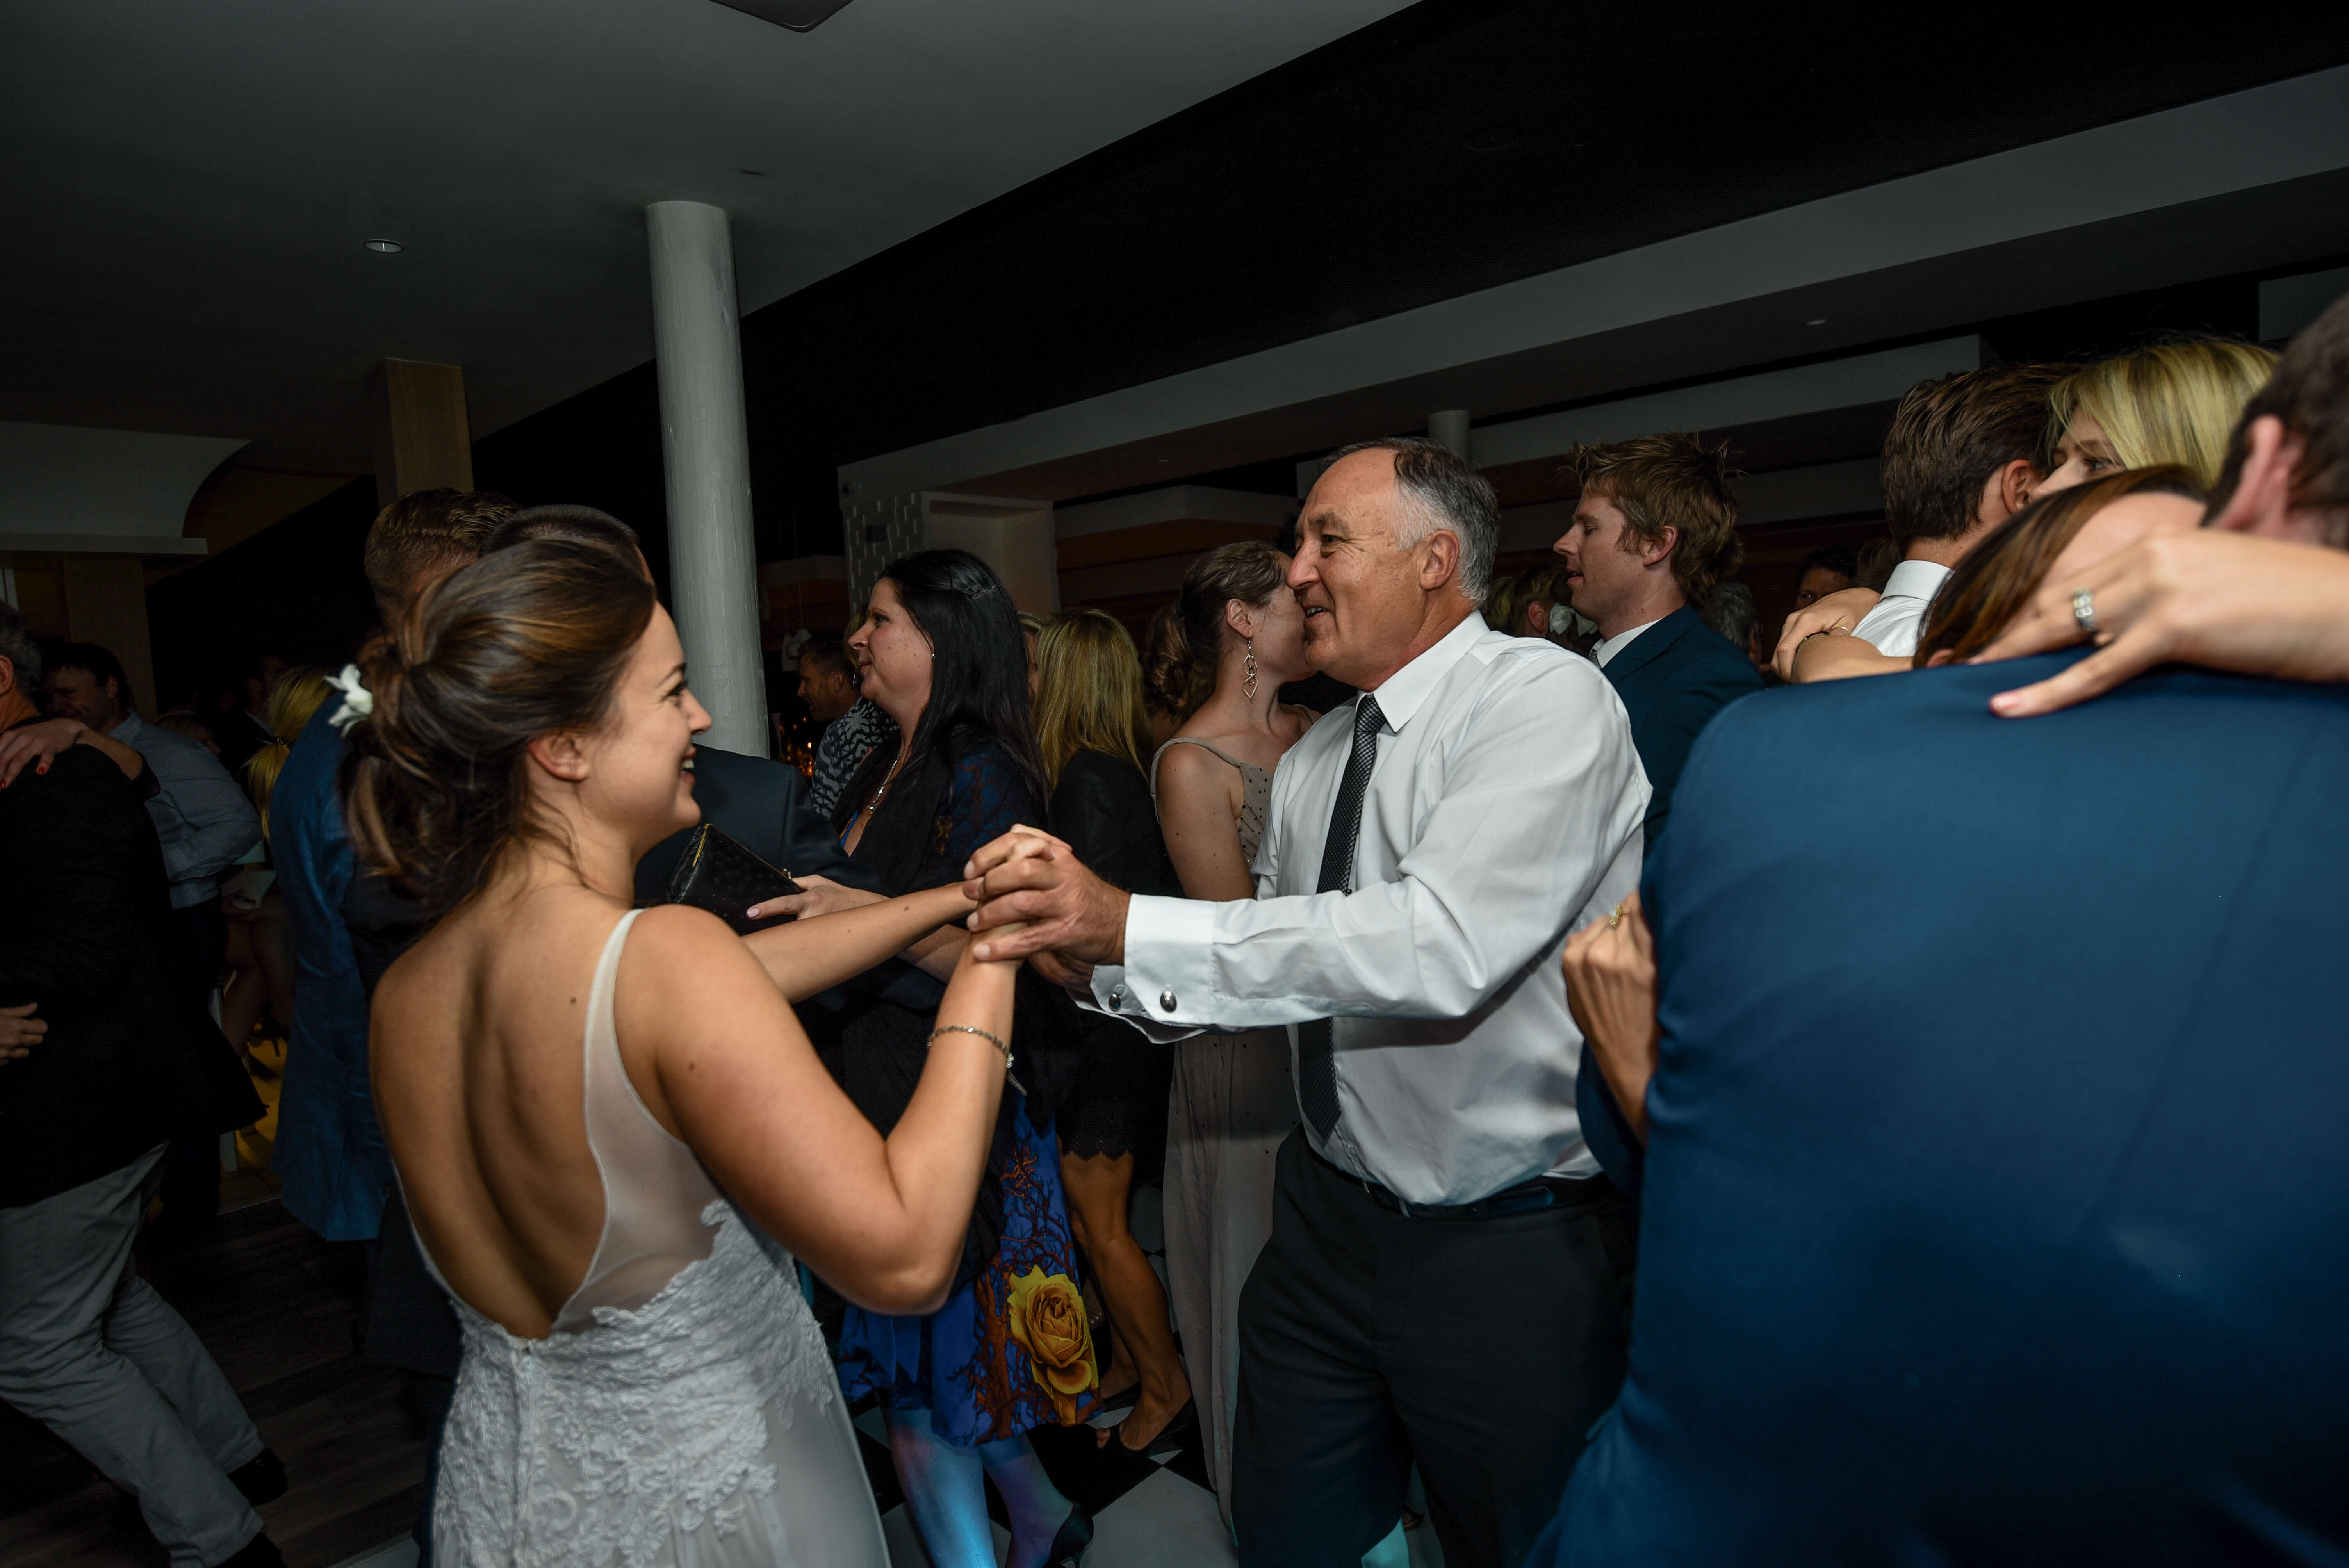 A bride and her father dancing together at her wedding to the best music in South Africa.